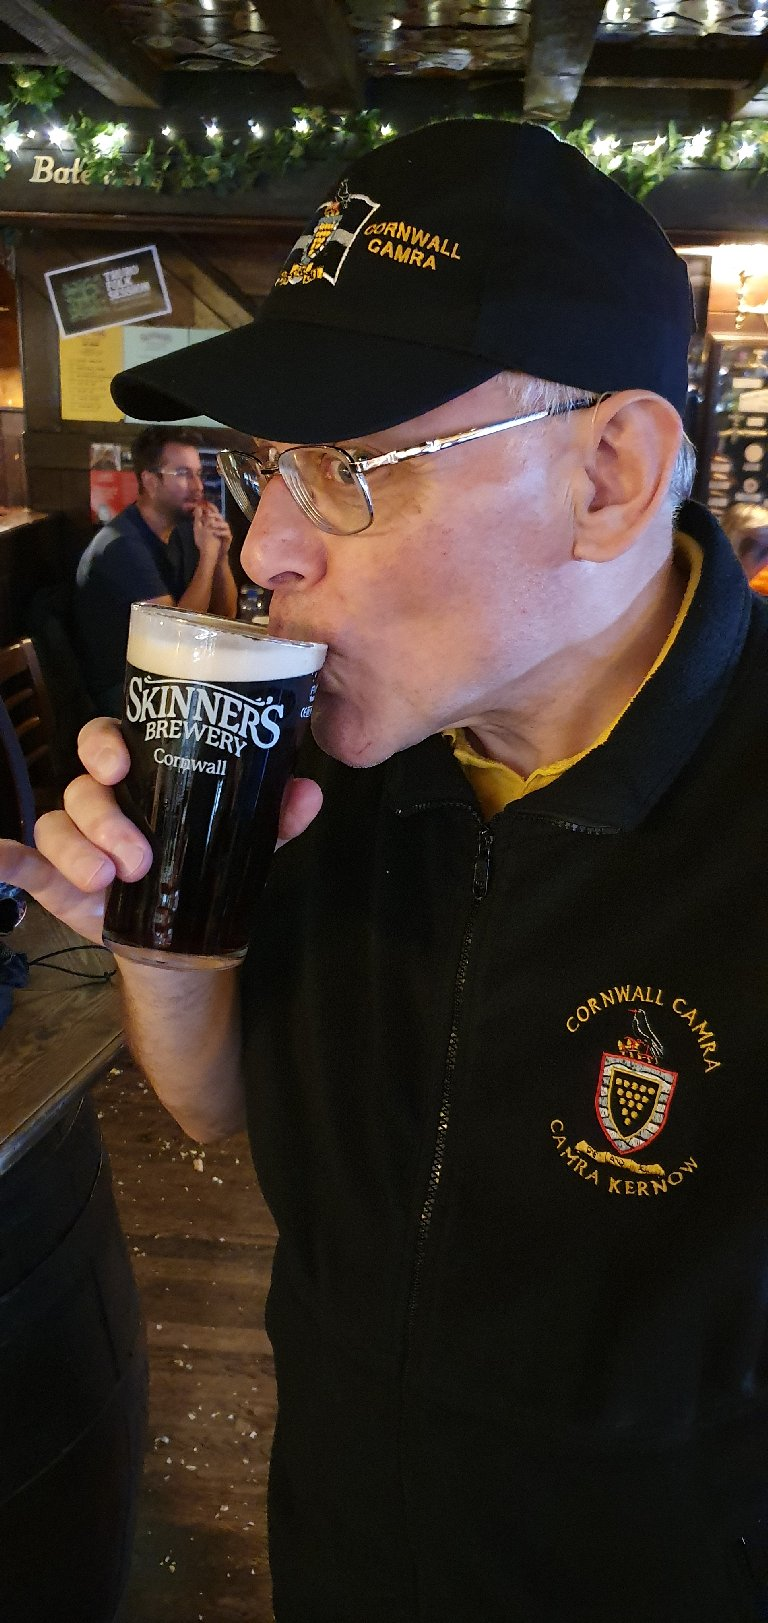 Stevie B quenching his thirst with a Pint of Penny at Skinner's Ale House on the way home.